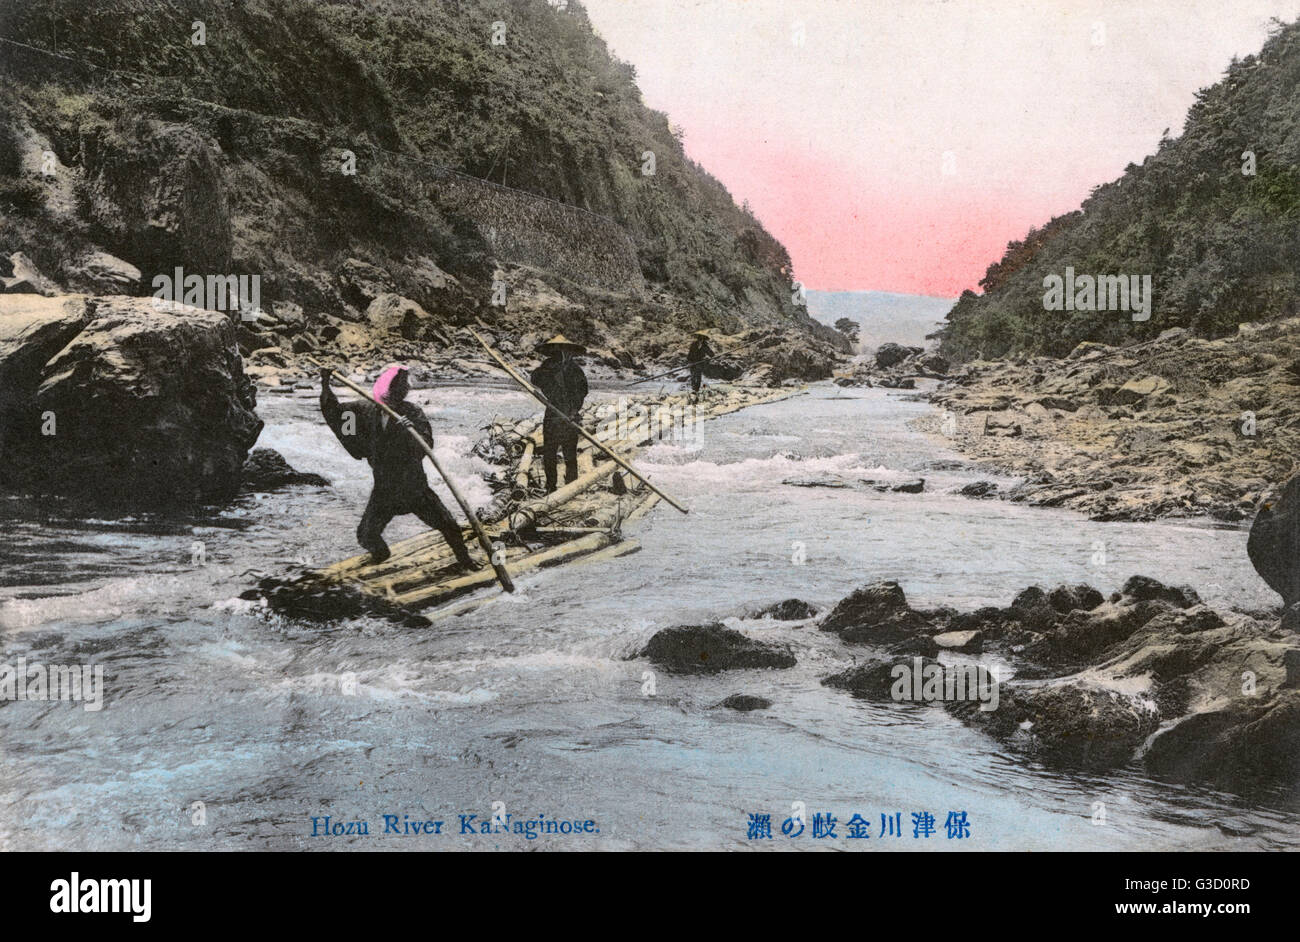 Japan - Poling rafts along the Hozu River - a part of Katsura River in Kyoto Prefecture, Japan     Date: circa 1910s - Stock Image